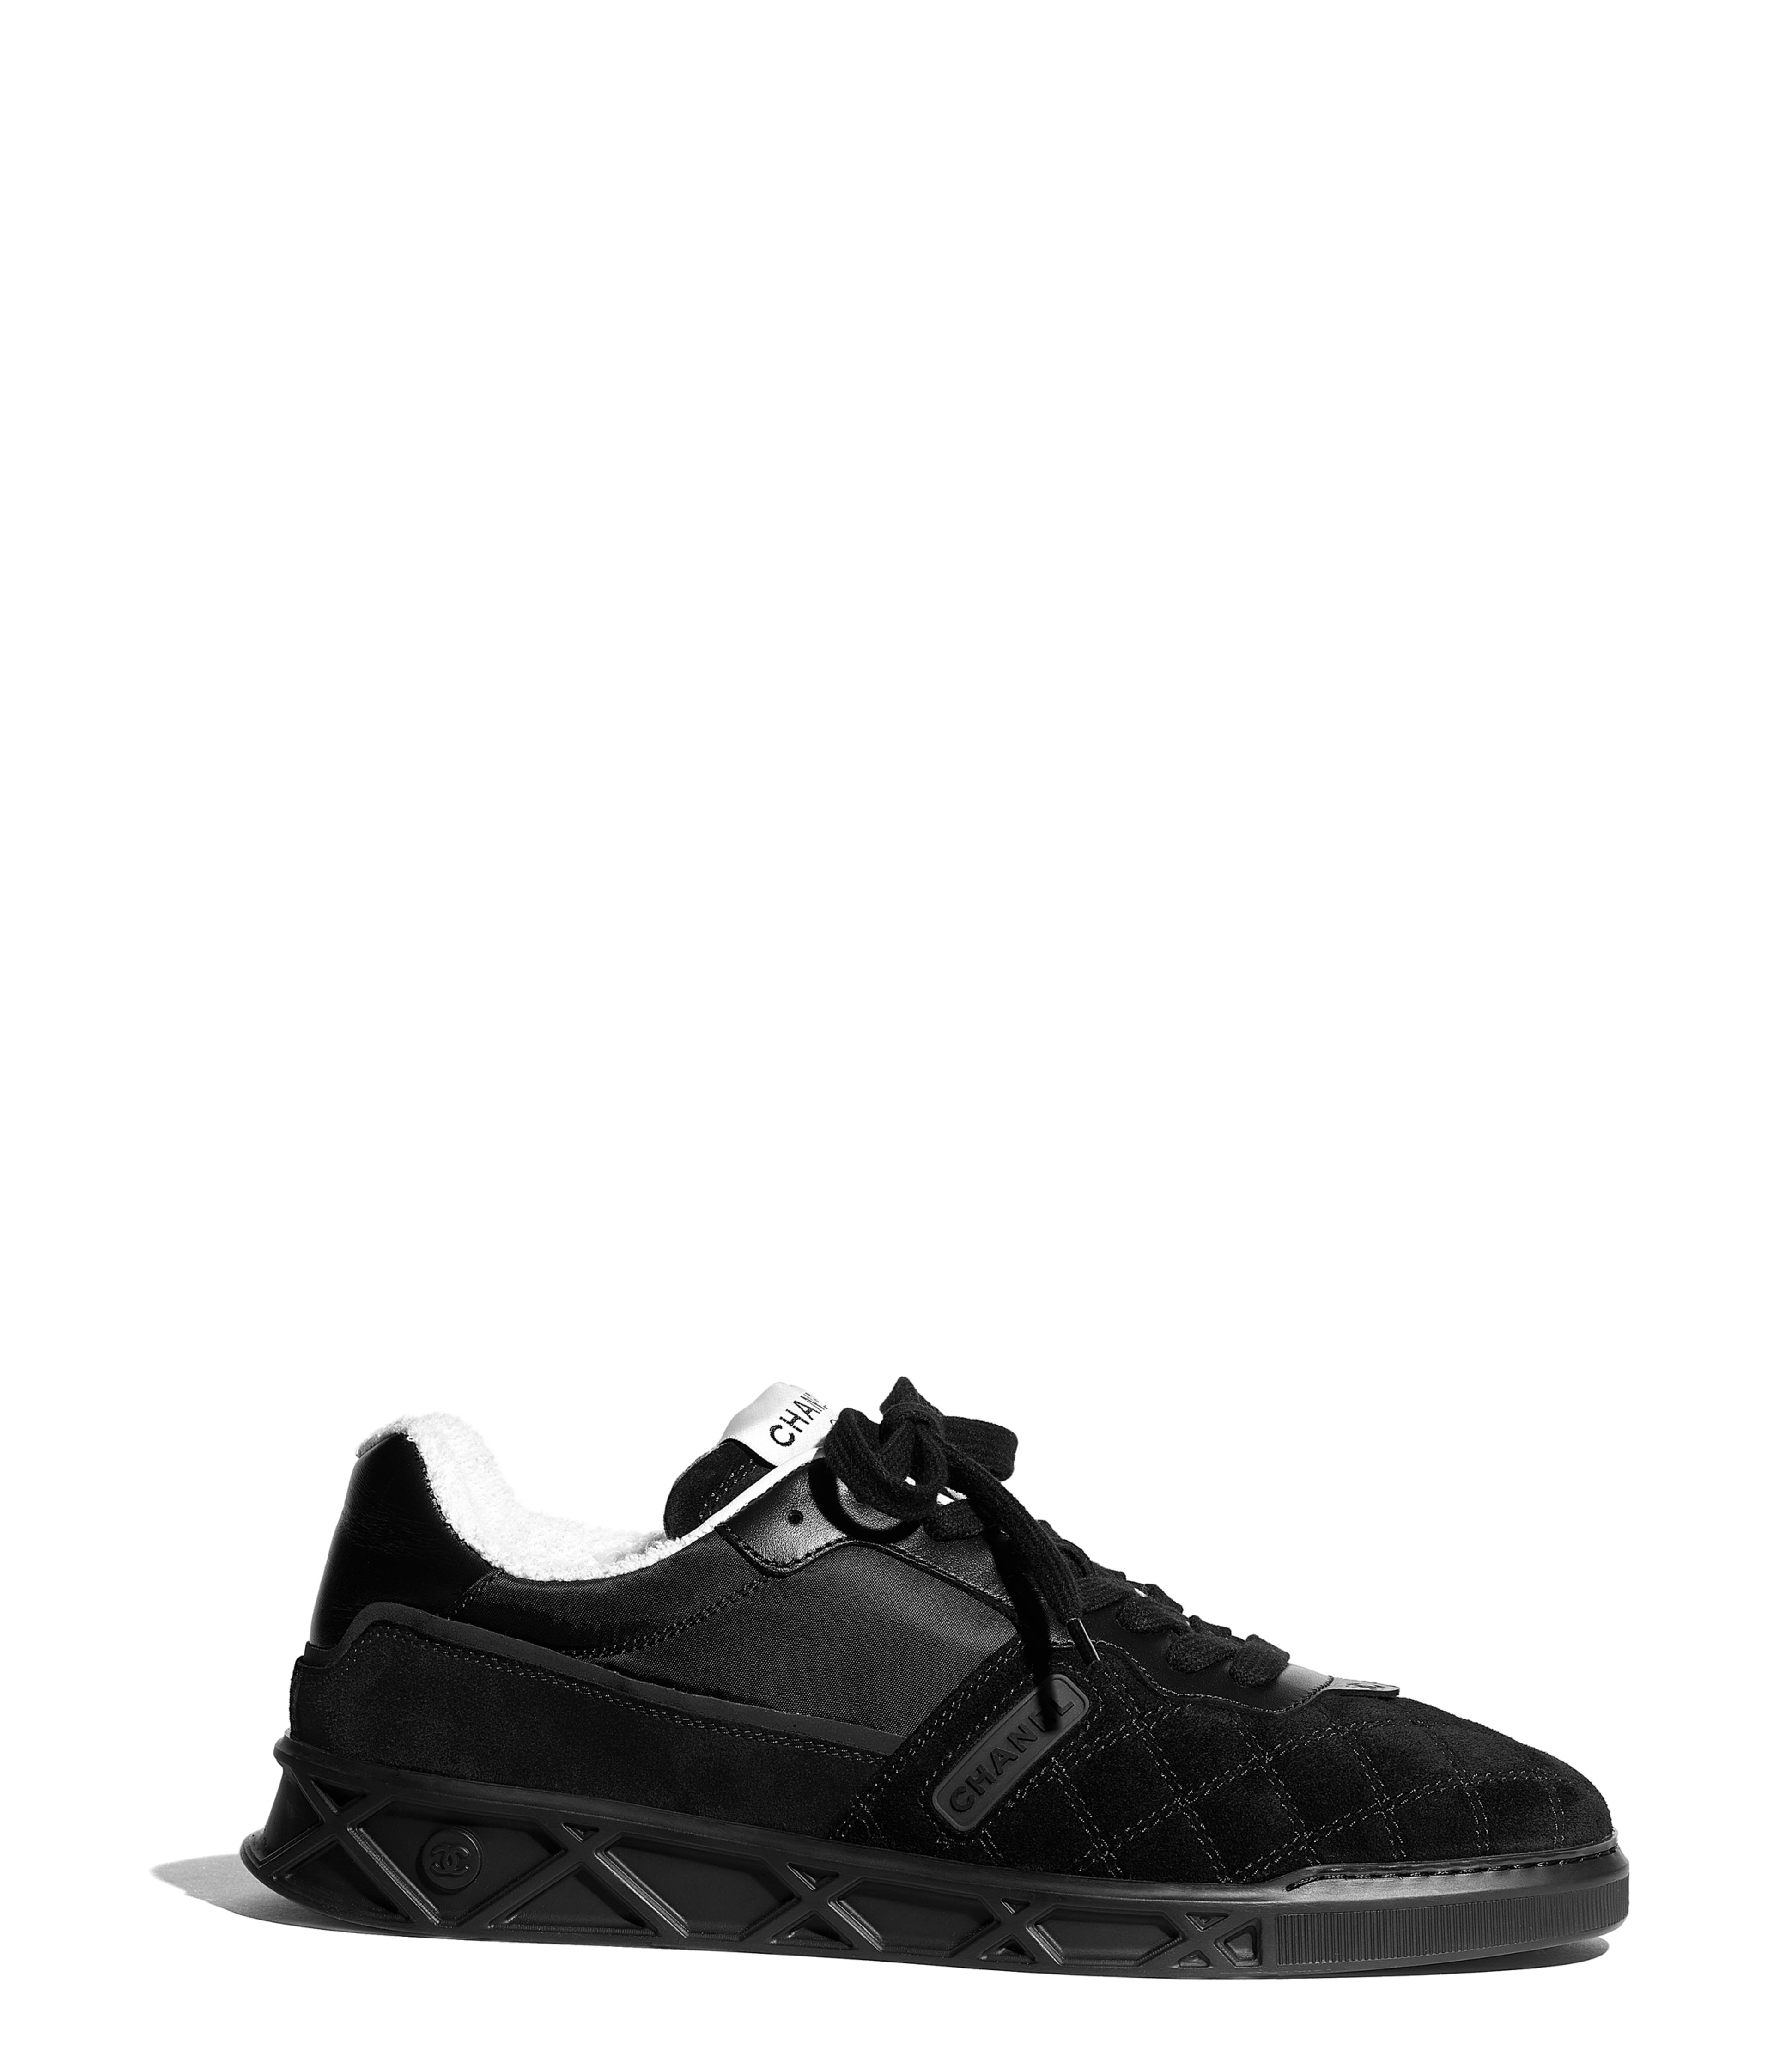 8f6159a8472 Sneakers - Shoes | CHANEL